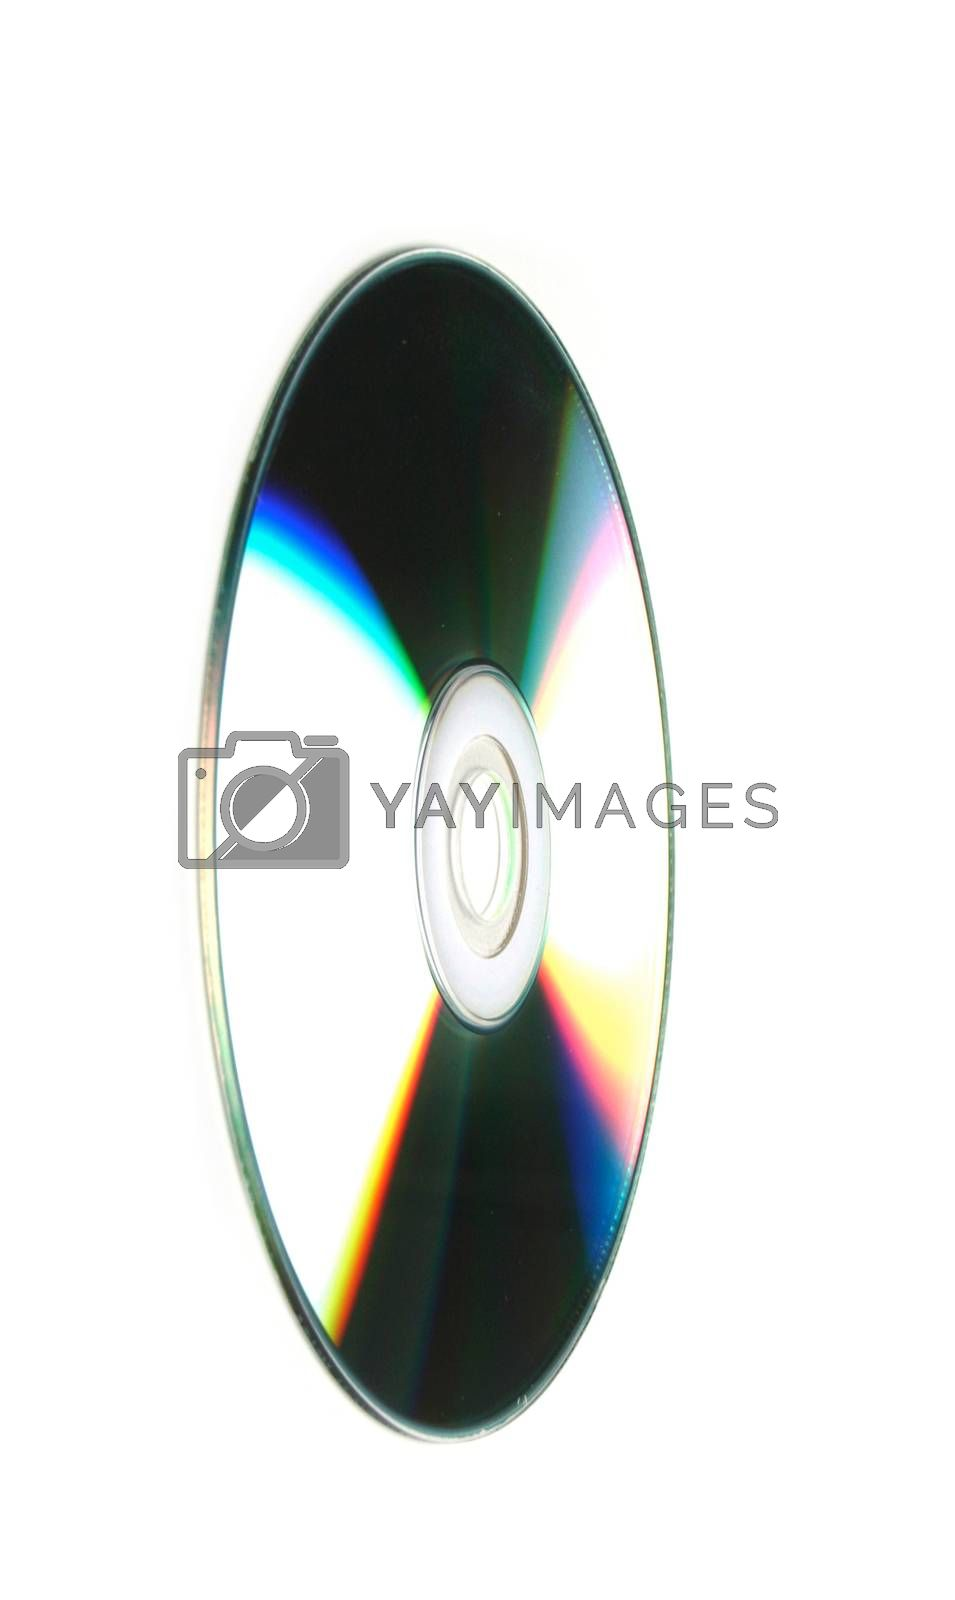 CD on white background - close-up